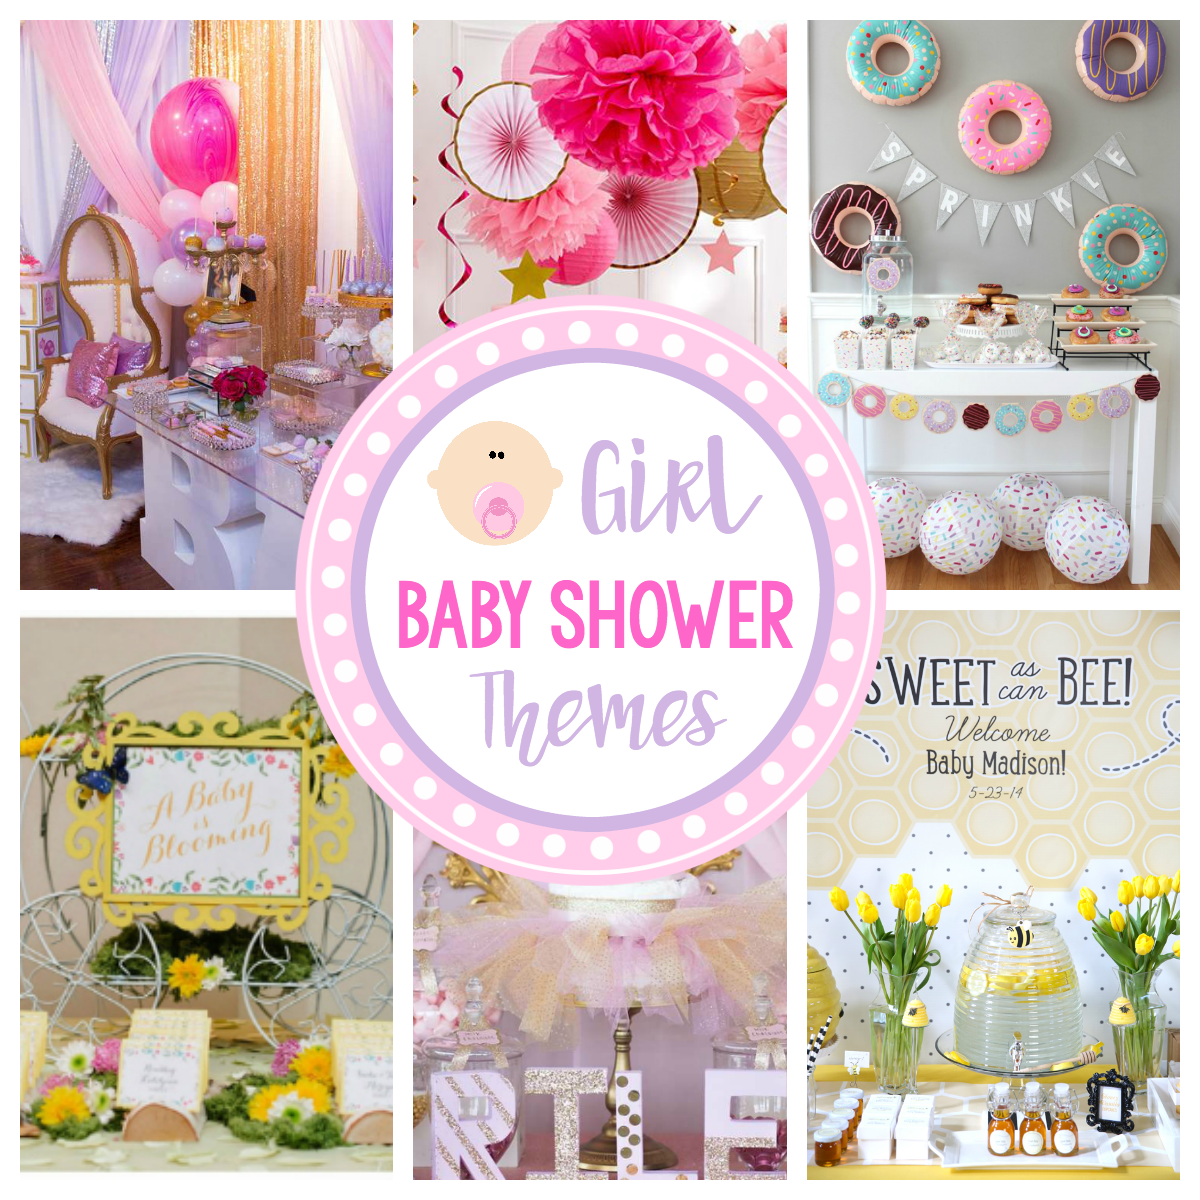 Baby Shower Themes For Girls Pinterest: Cute Girl Baby Shower Themes & Ideas